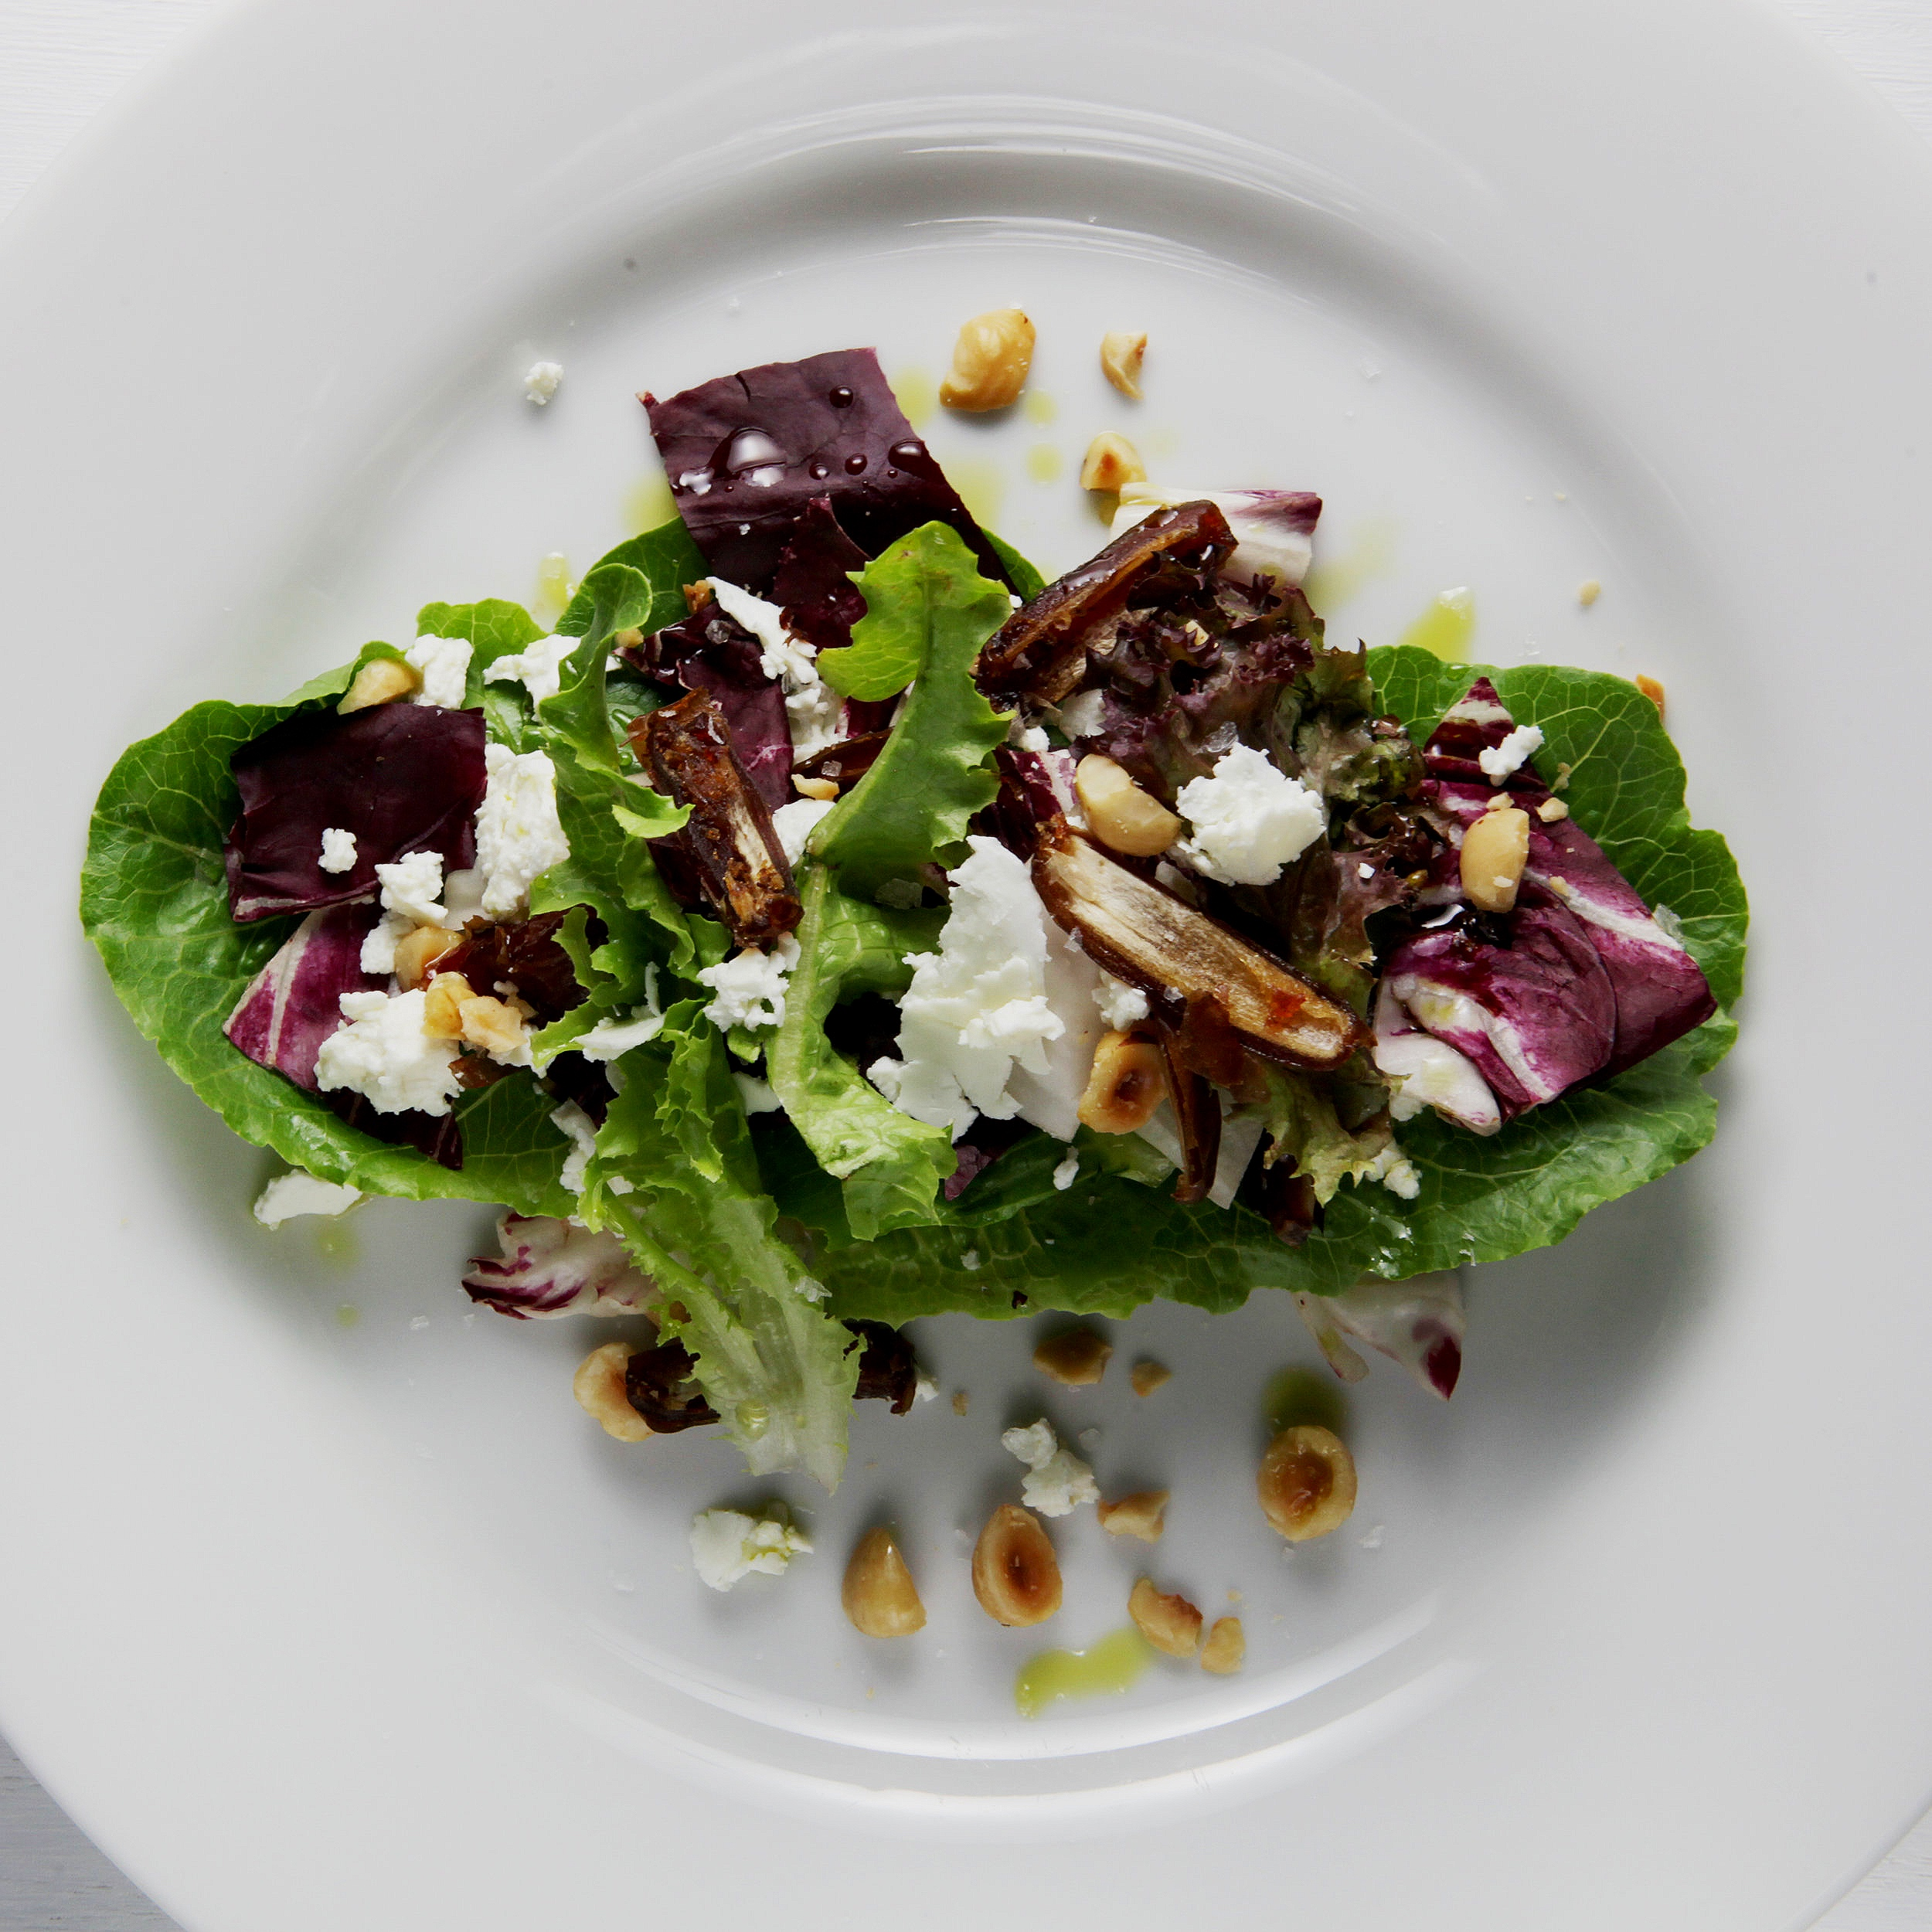 Mixed greens salad with hazelnuts and goat cheese